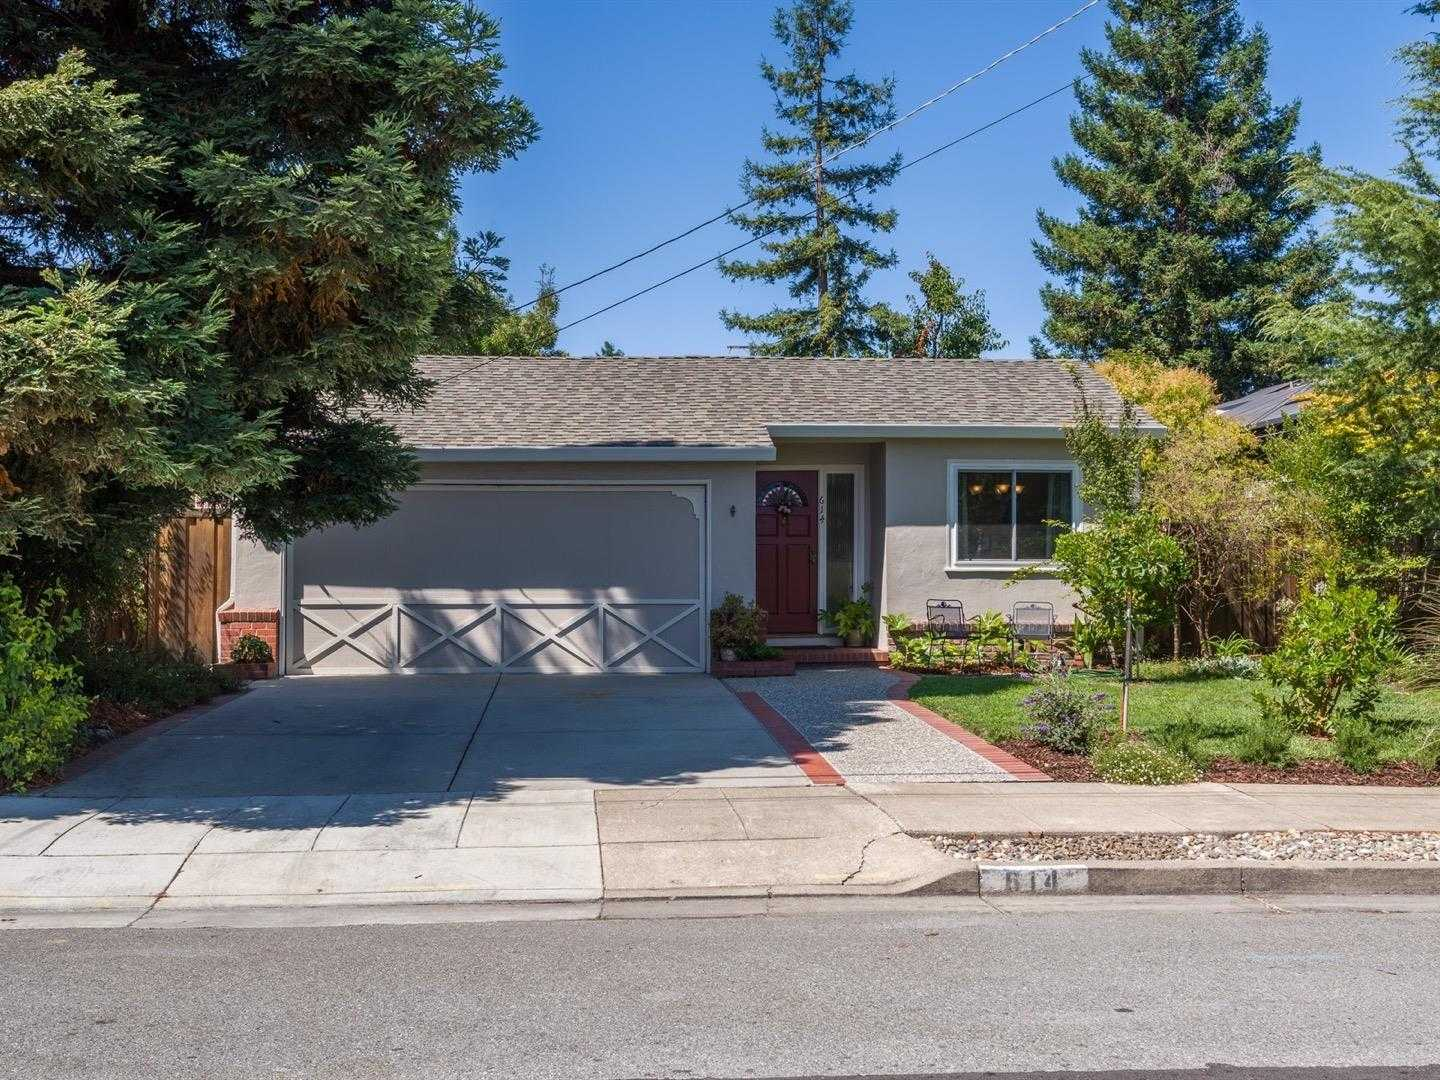 $1,398,000 - 2Br/1Ba -  for Sale in Redwood City